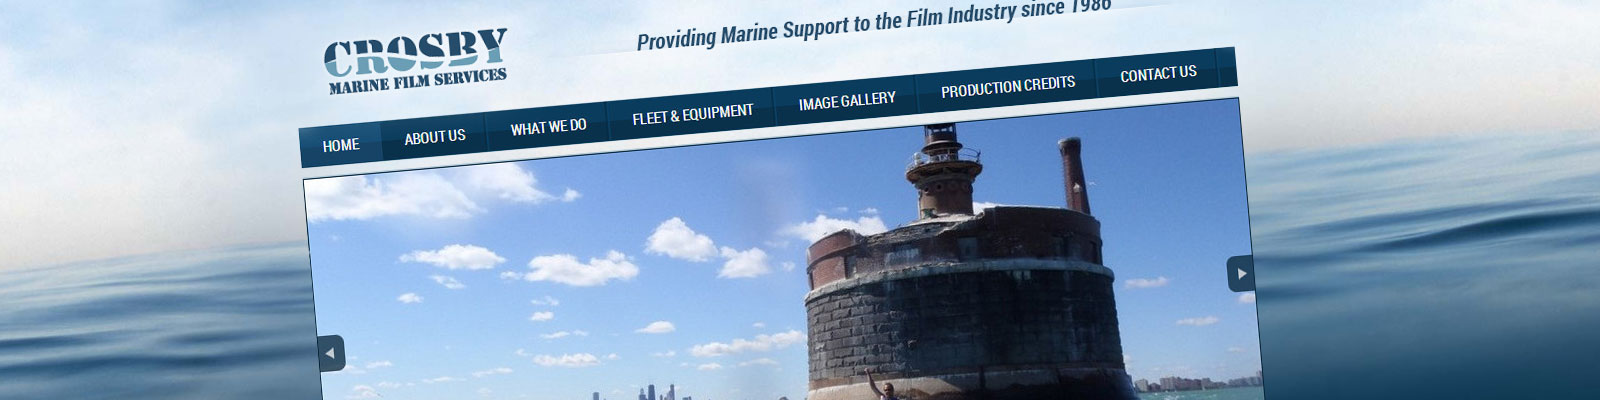 Crosby Marine Film Services